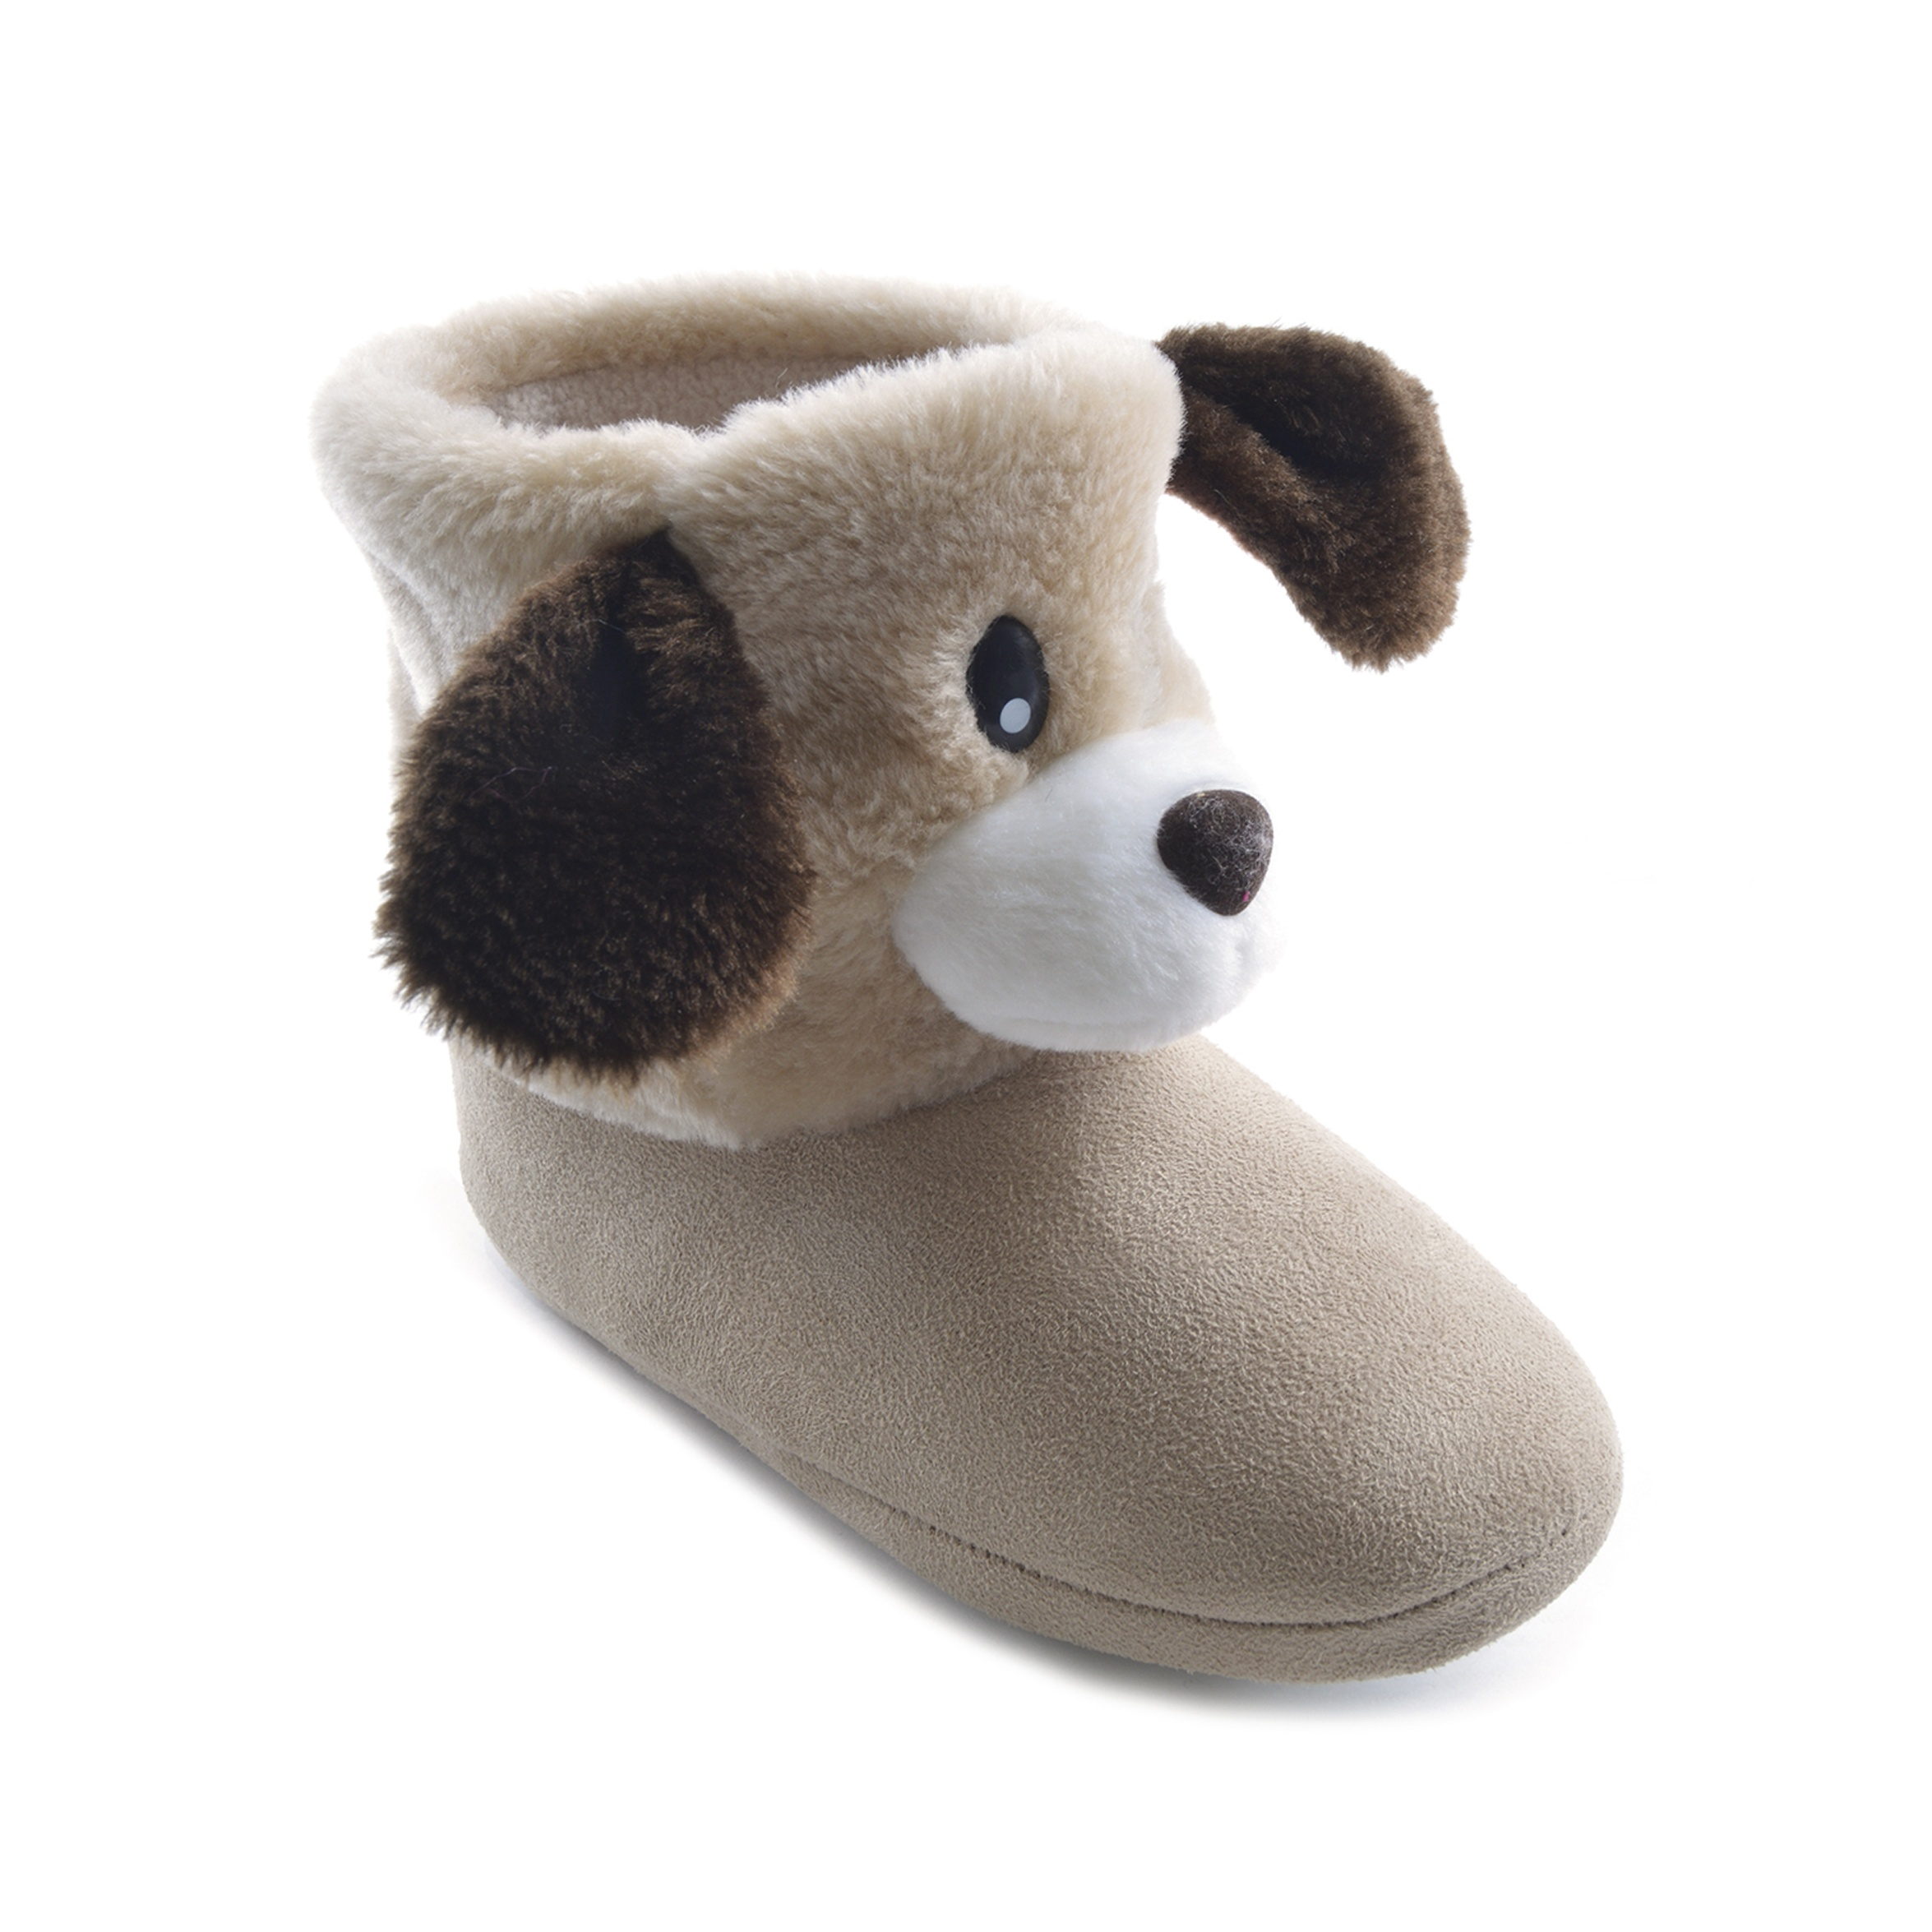 Dog Booties Amazon Uk